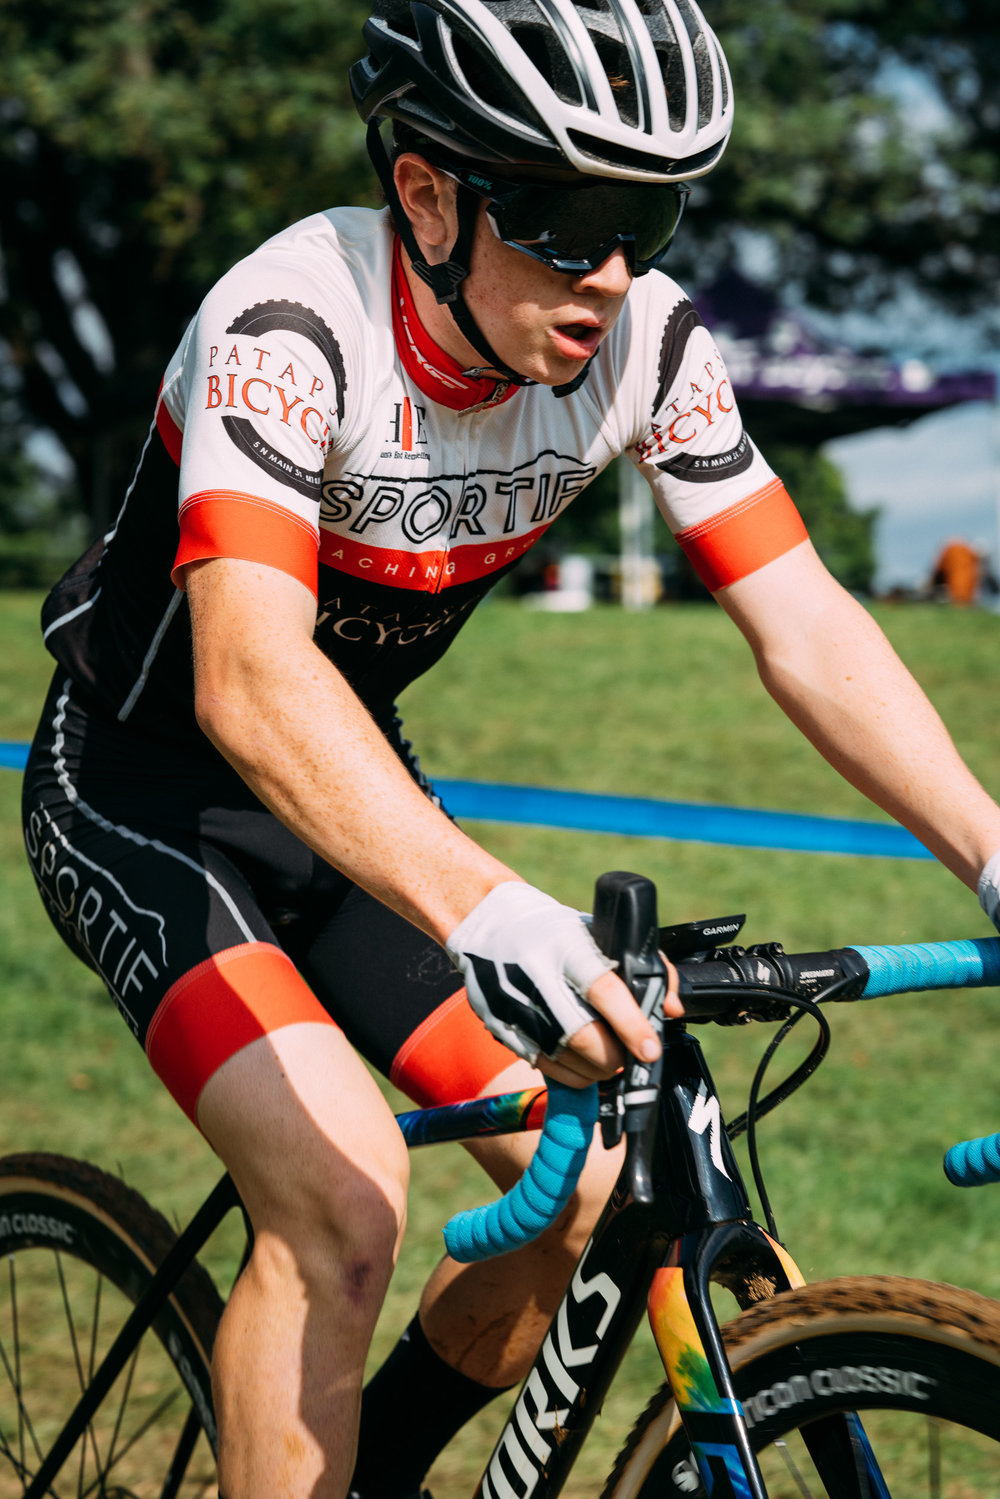 photo-rhetoric-to-be-determined-nittany-cyclocross-1181.jpg